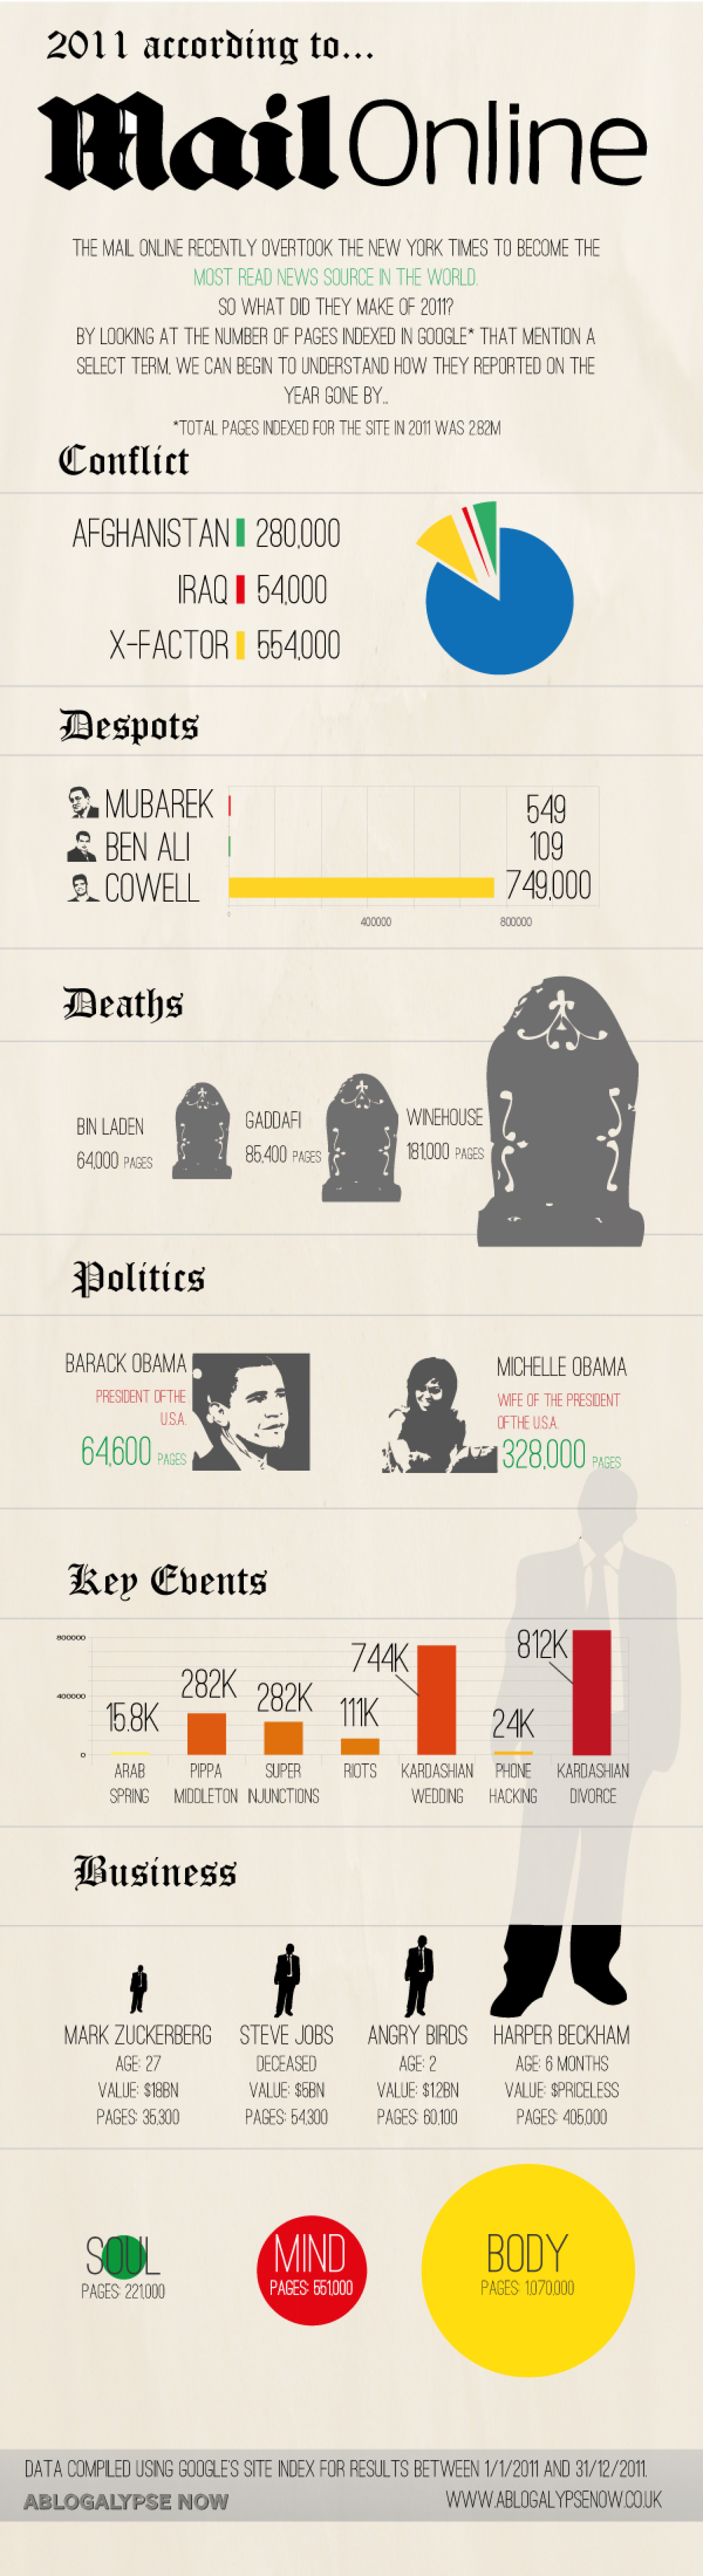 The Mail Online in Numbers Infographic